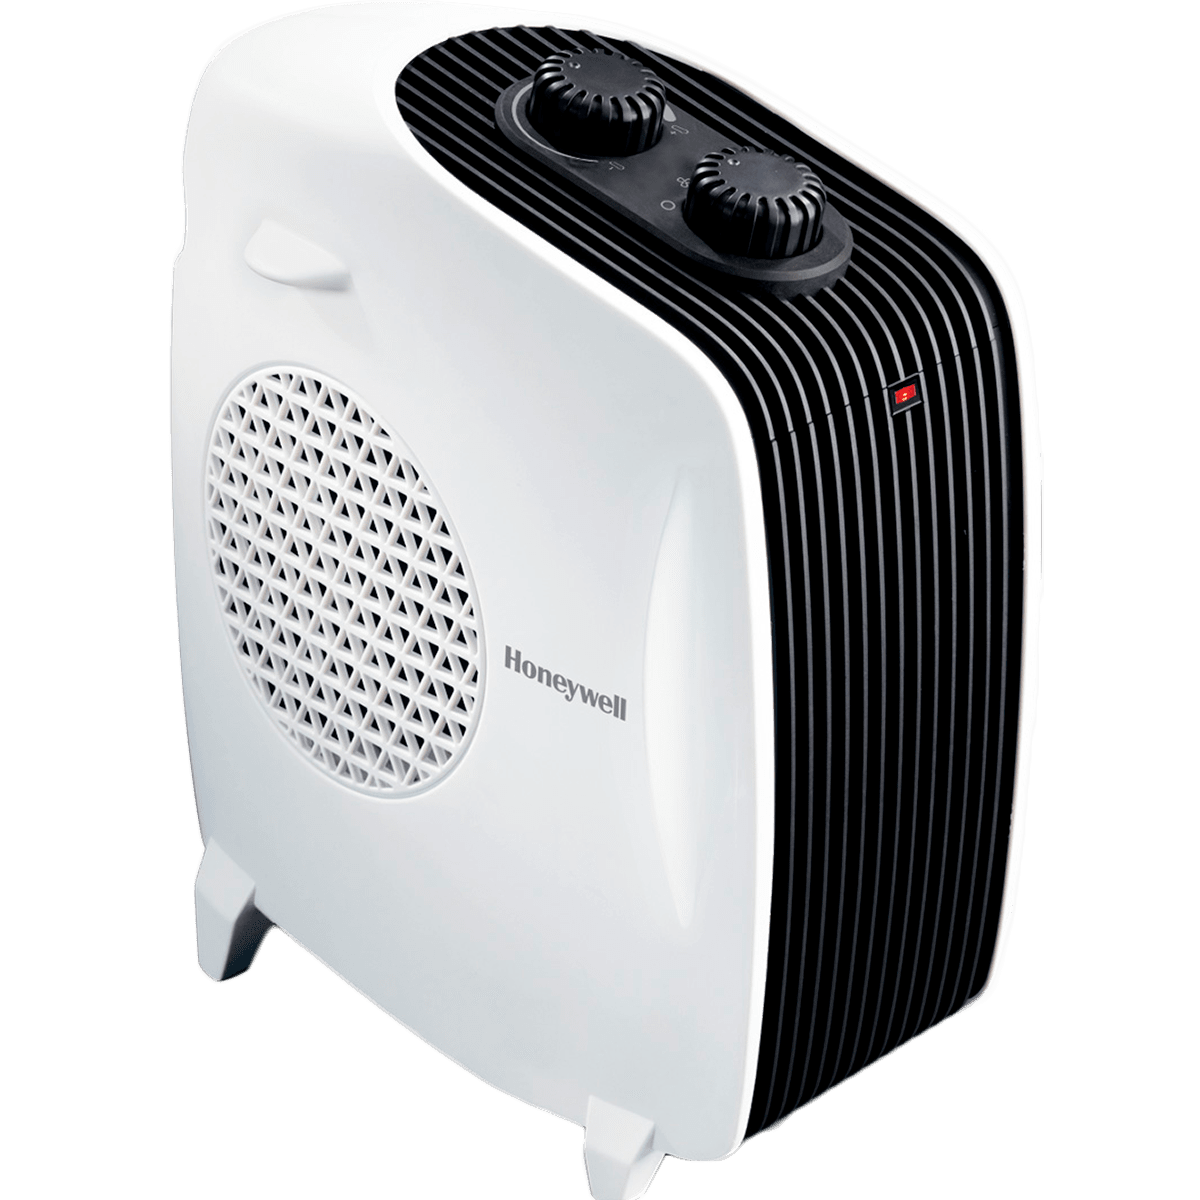 Honeywell Dual Position Heater Fan (HHF175W) ho7150